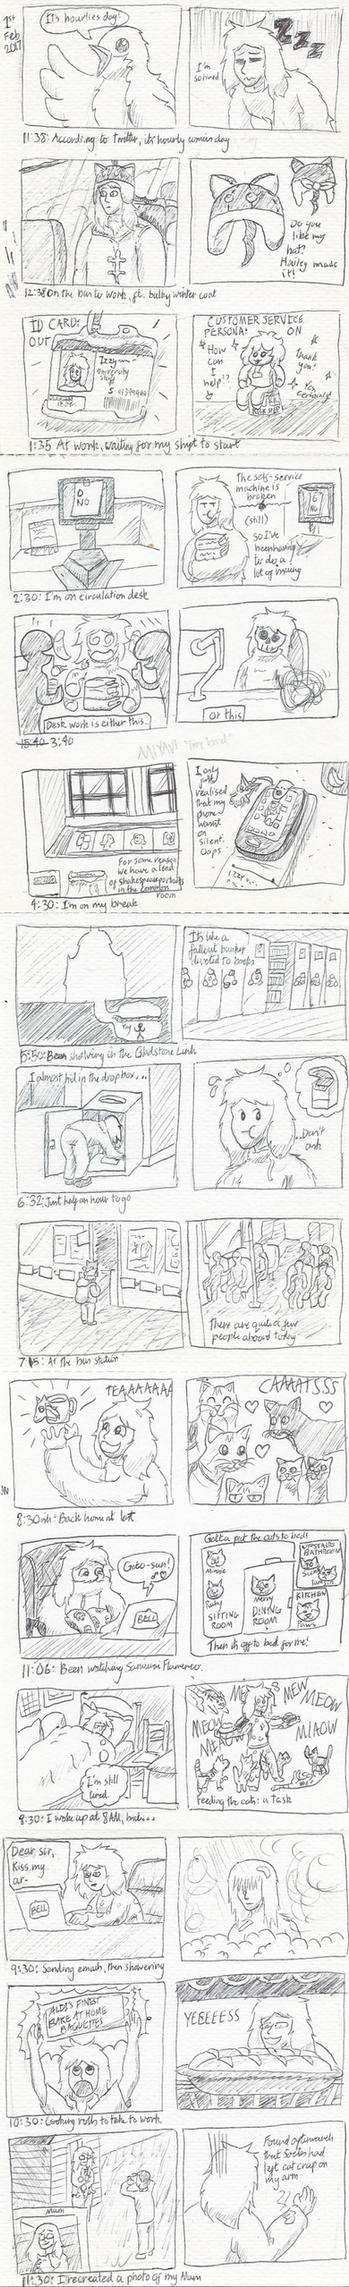 Hourly Comic Day 2018 by LaqueusAxolotl